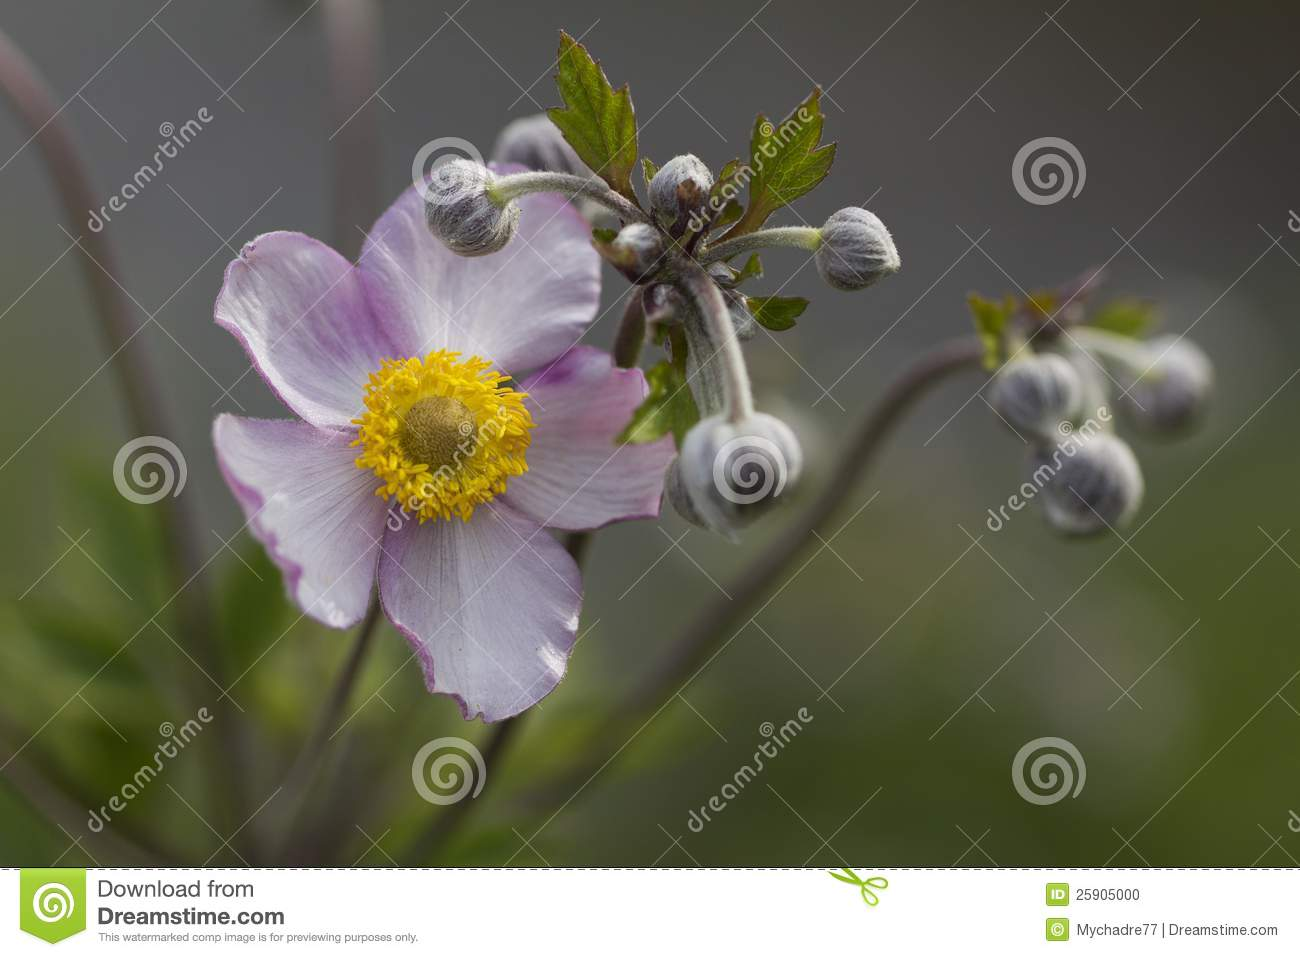 Japanese Anemone clipart #9, Download drawings